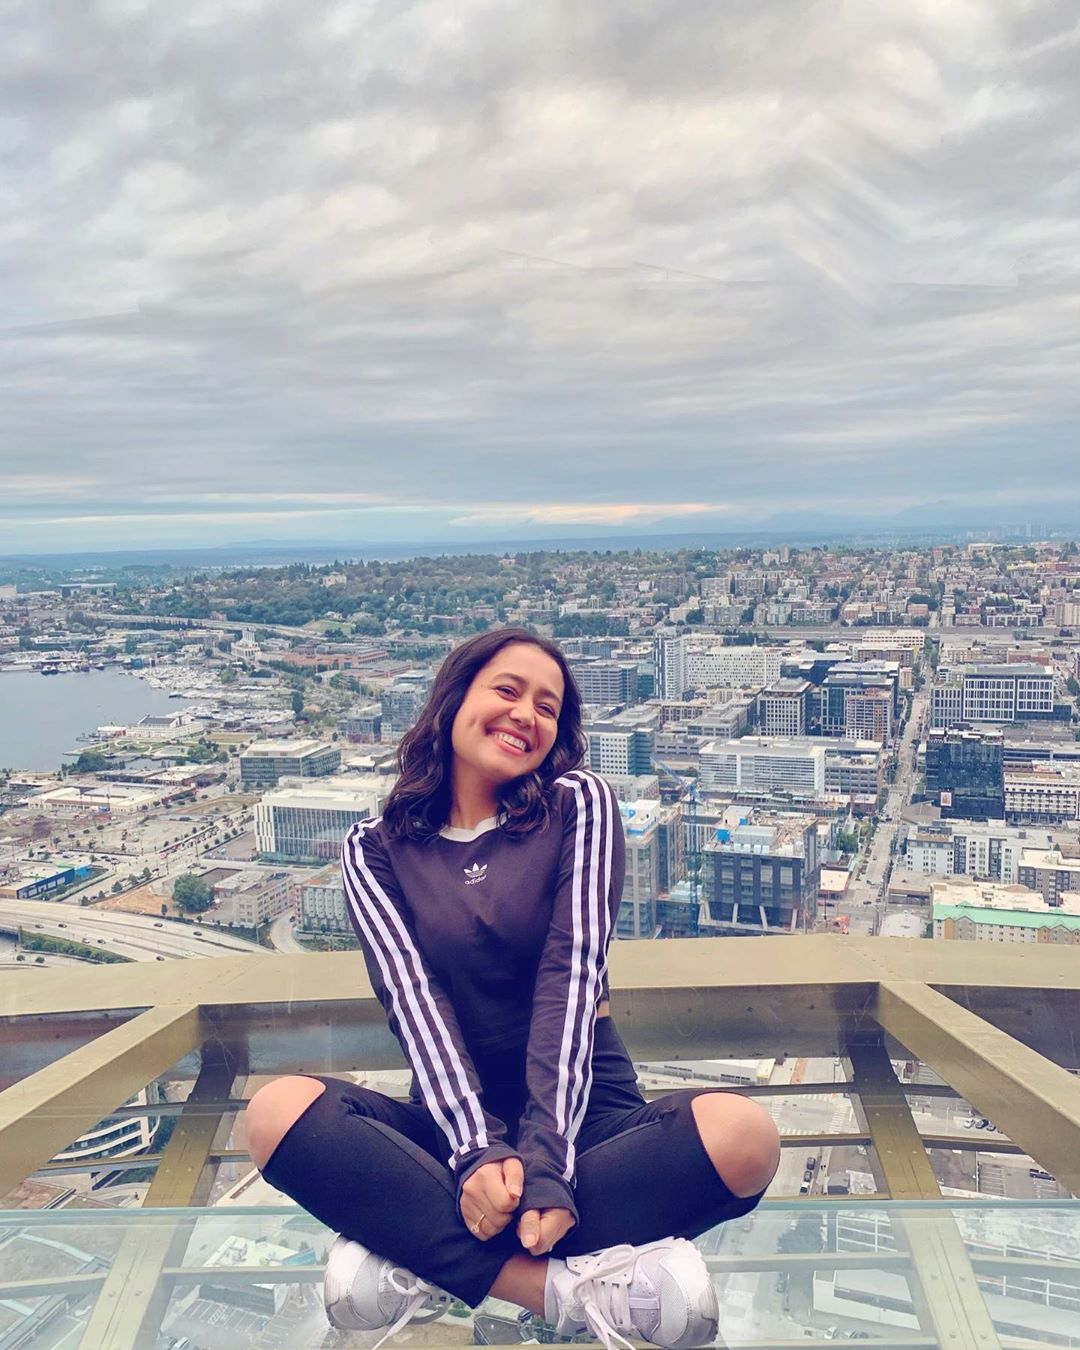 Neha Kakkar Shares A Cryptic Post About Not Stressing Over